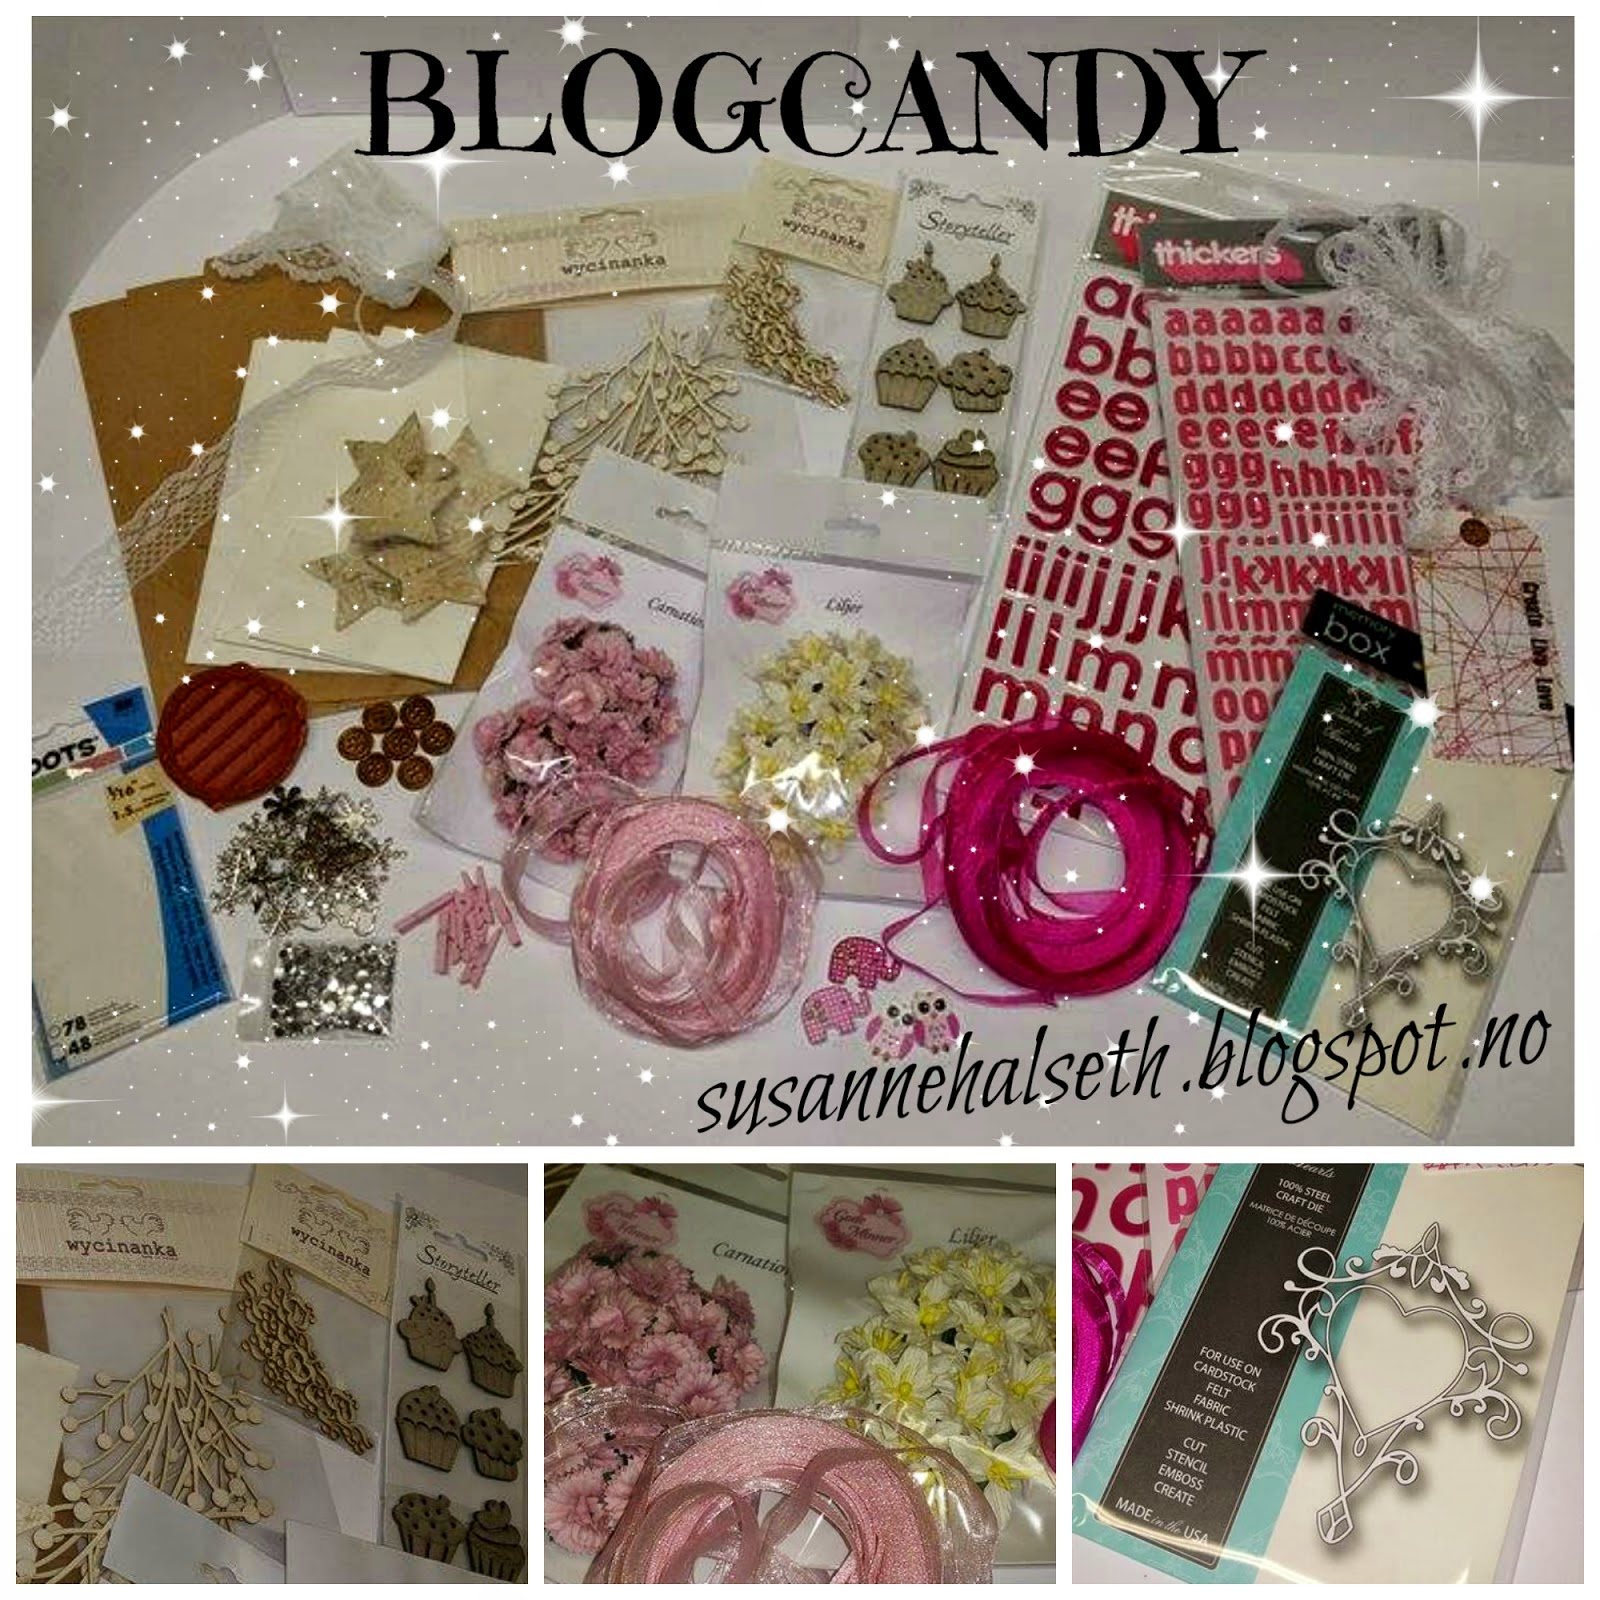 Blogcandy hos Susanne